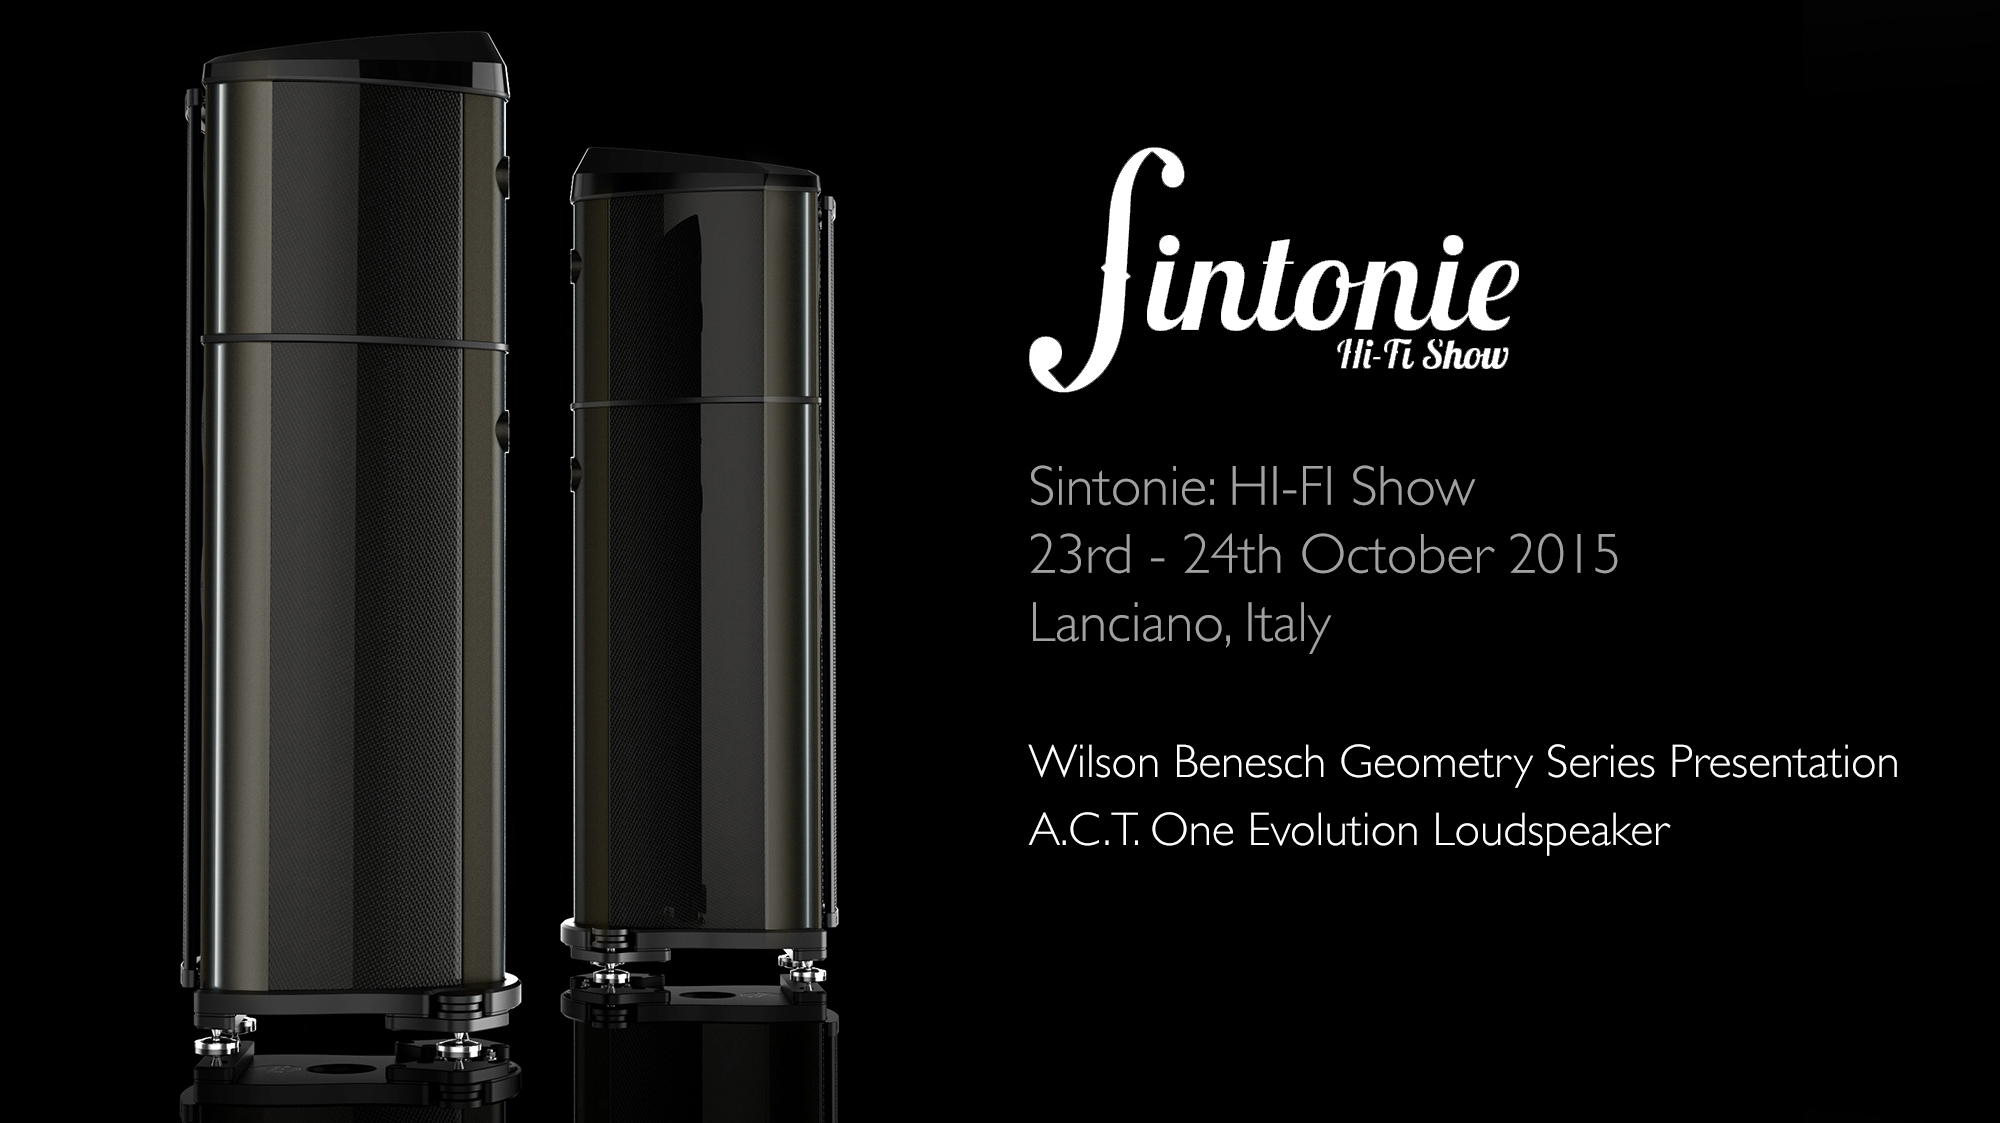 Wilson Benesch - A.C.T. One Evolution - Loudspeaker - Sintonie HIFI Show - Carbon Fibre - British - High - End - Audio - Geometry Series - Reference Line